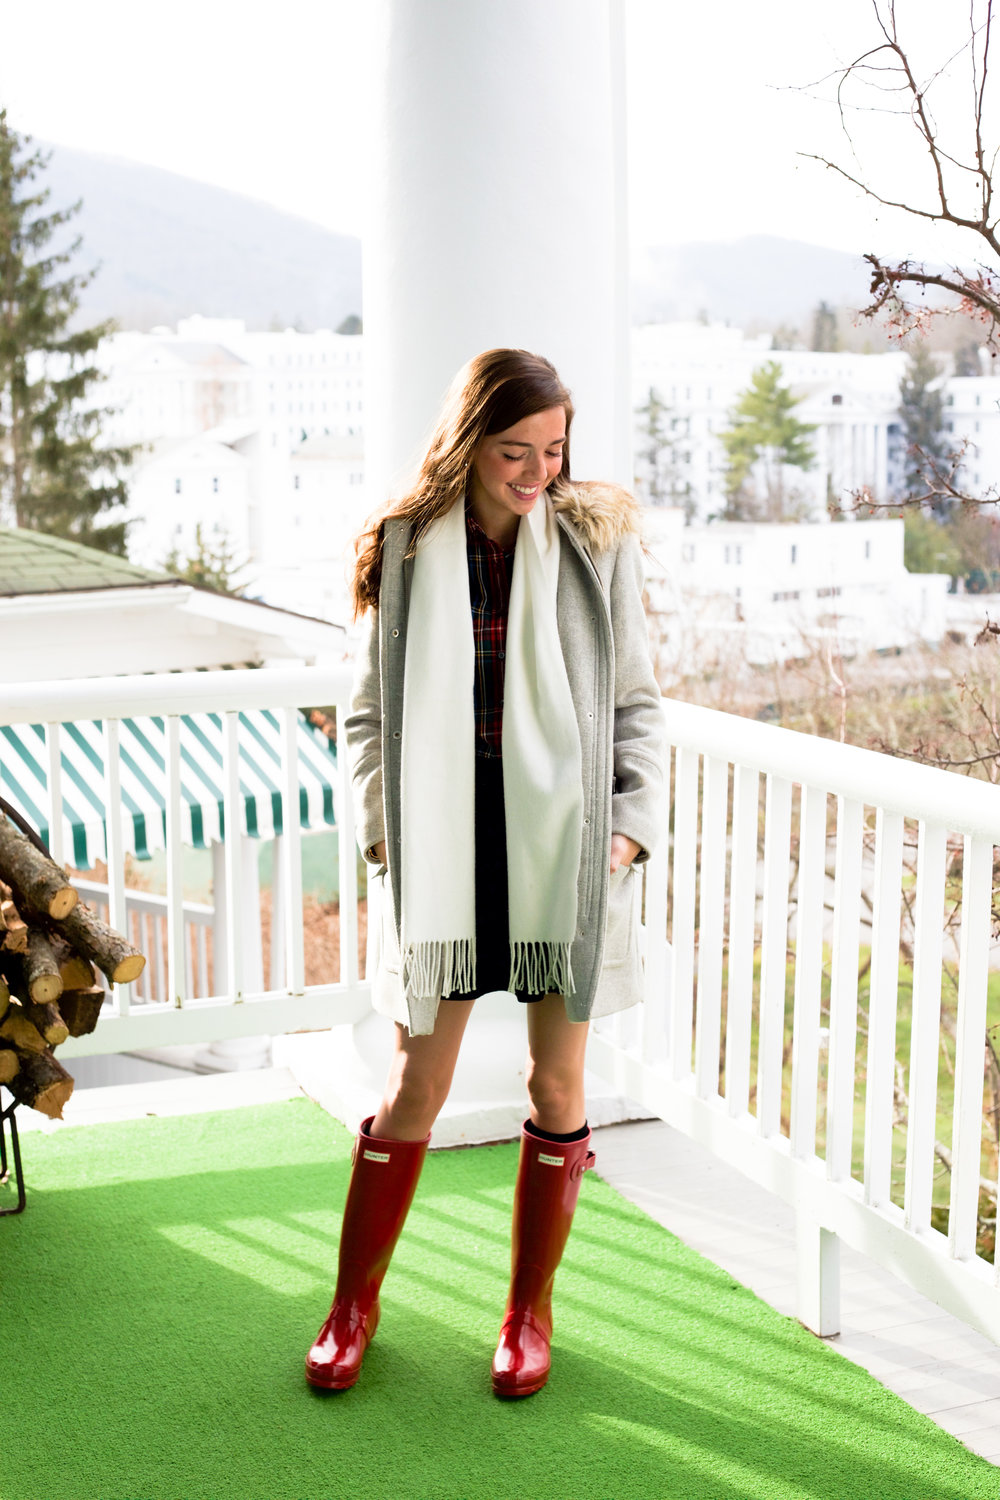 fashion blogger lcb style greenbrier resort michele watches j crew (1 of 27).jpg